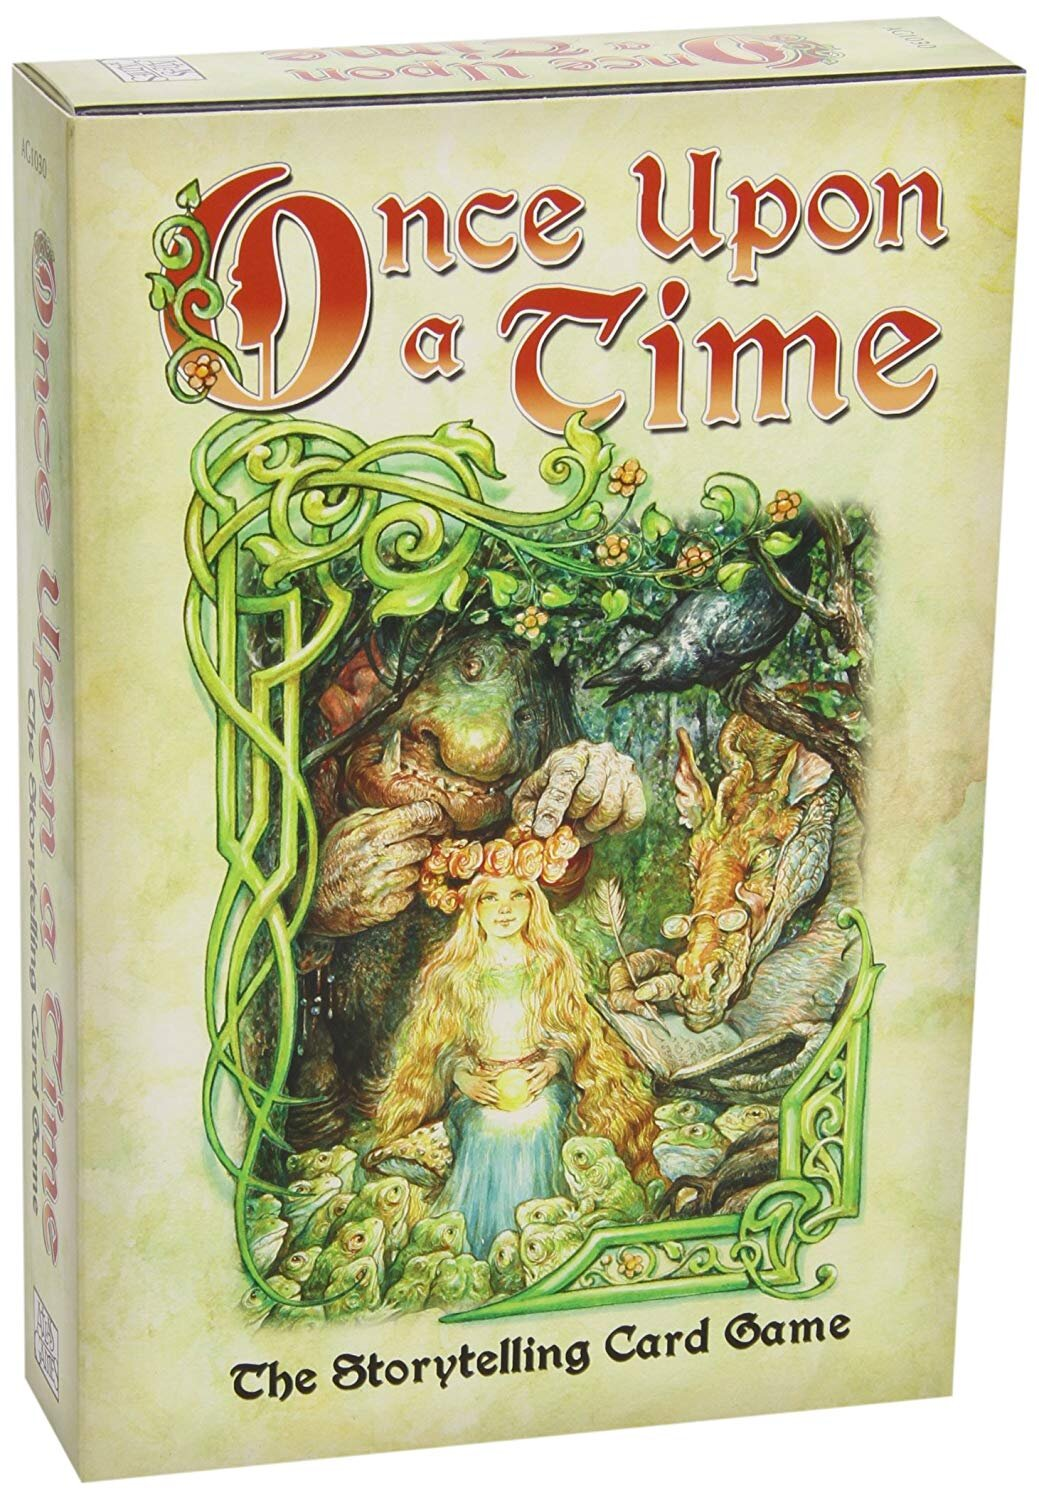 Family Board Games for Storytelling - once upon a time.jpg